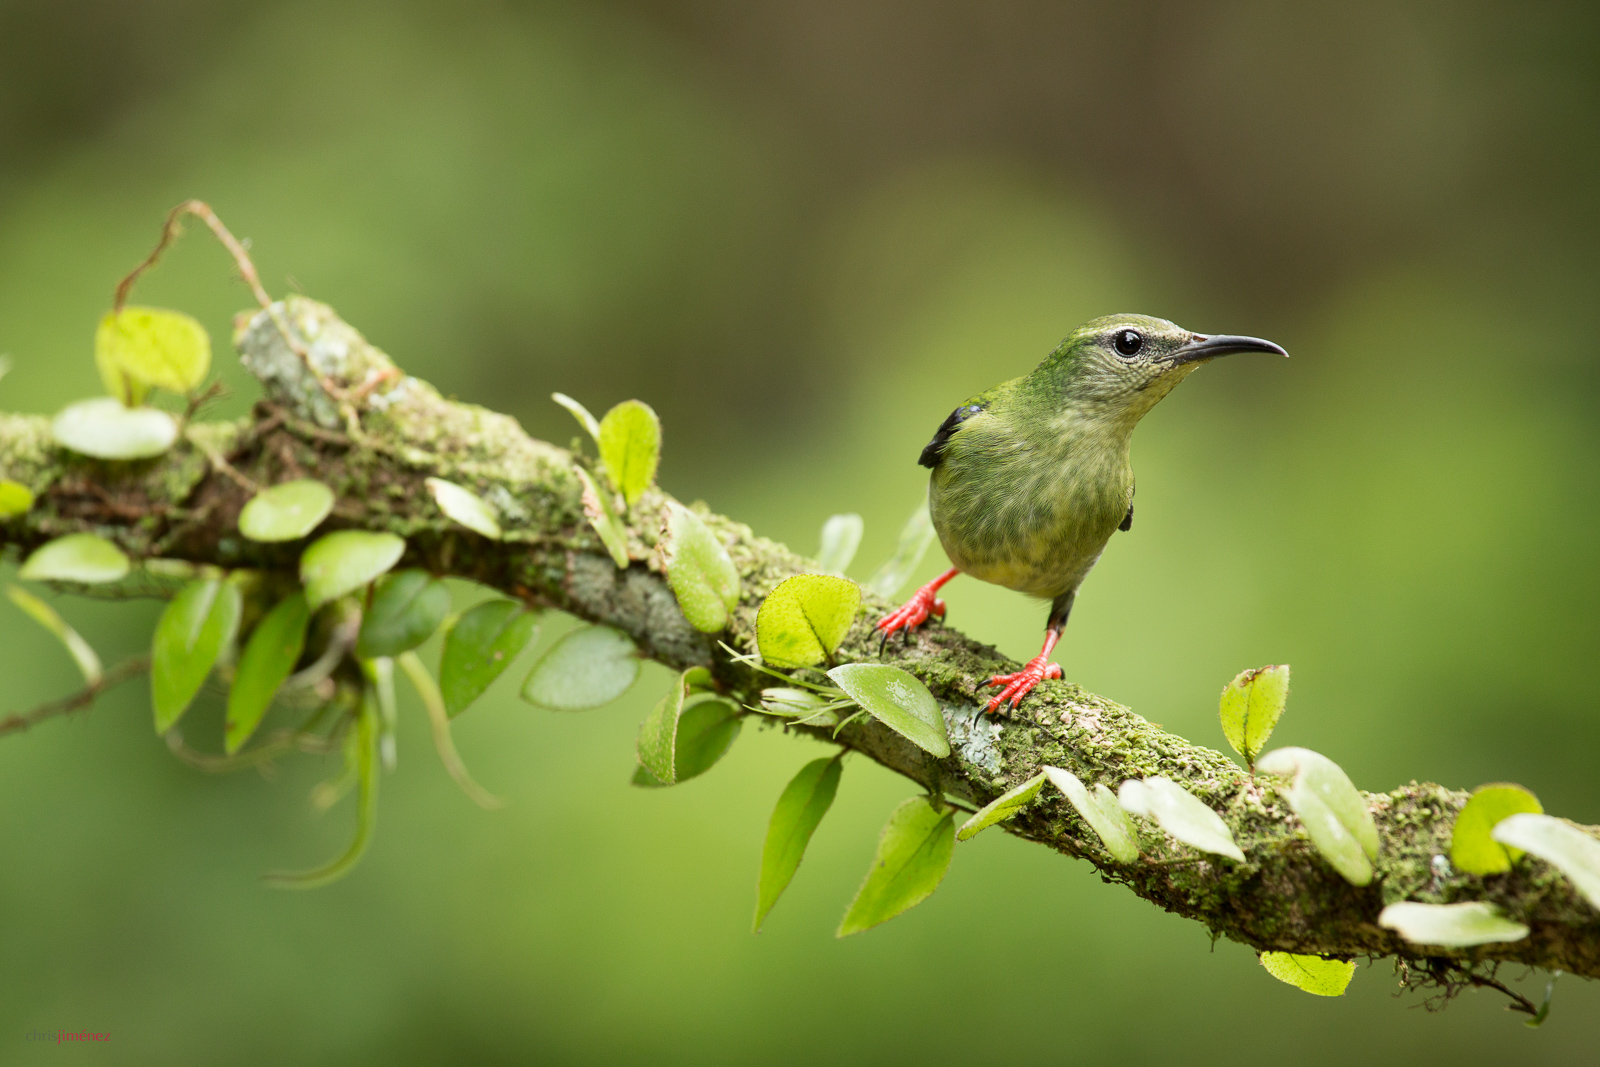 Red-legged honeycreeper (Cyanerpes cyaneus) female perched on a branch